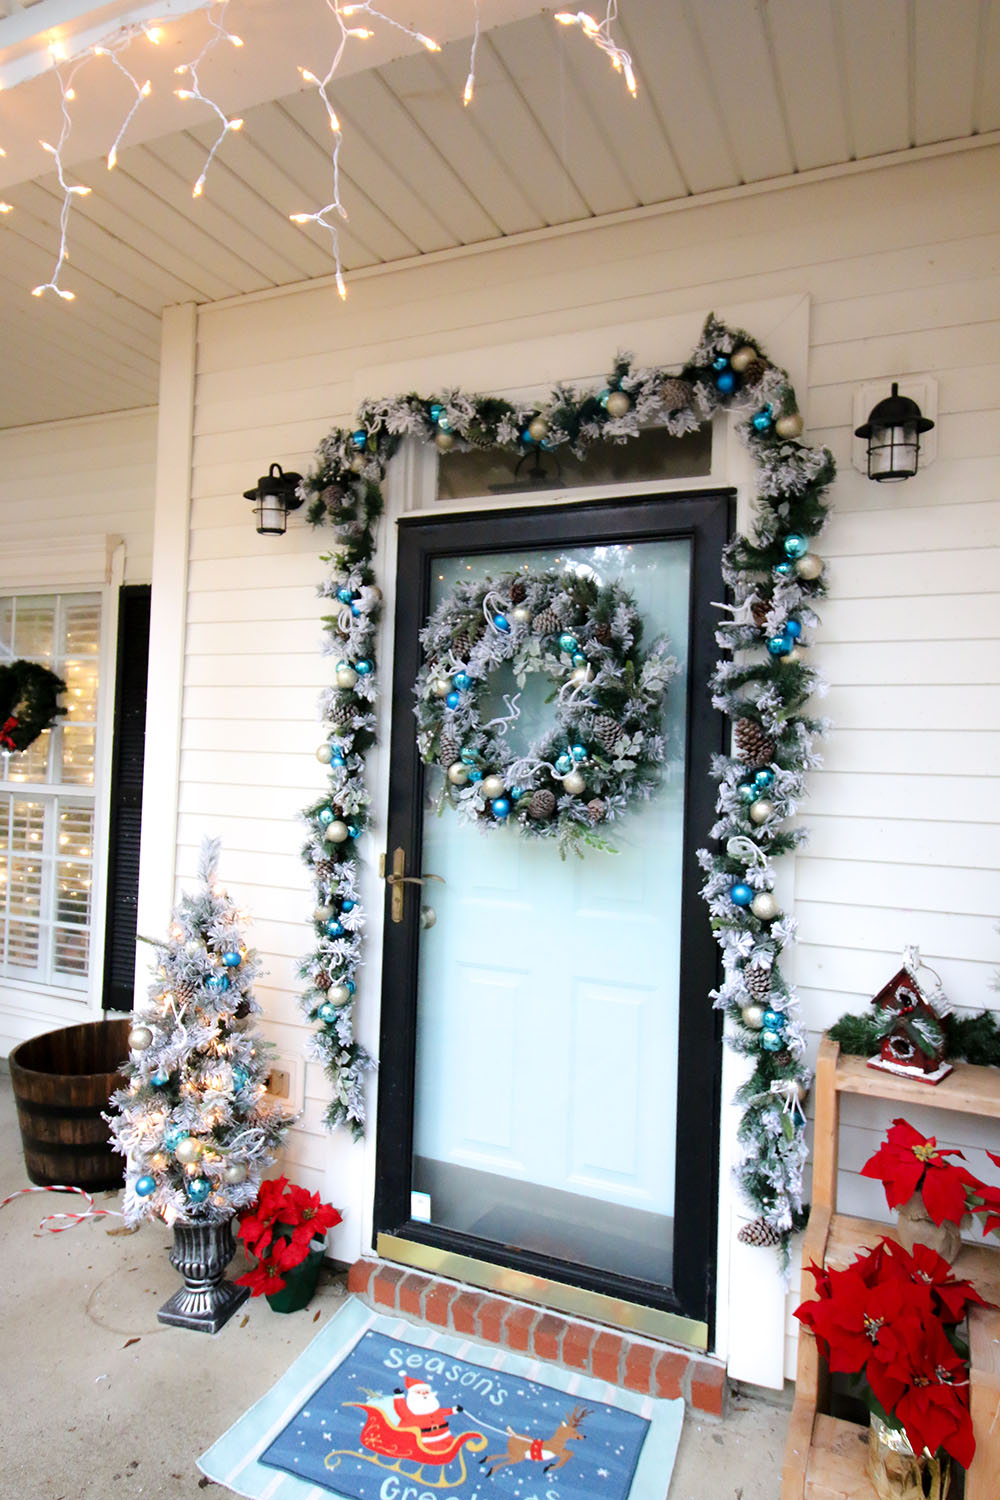 A front door with a flocked holiday wreath decorated with blue and gold ornaments.